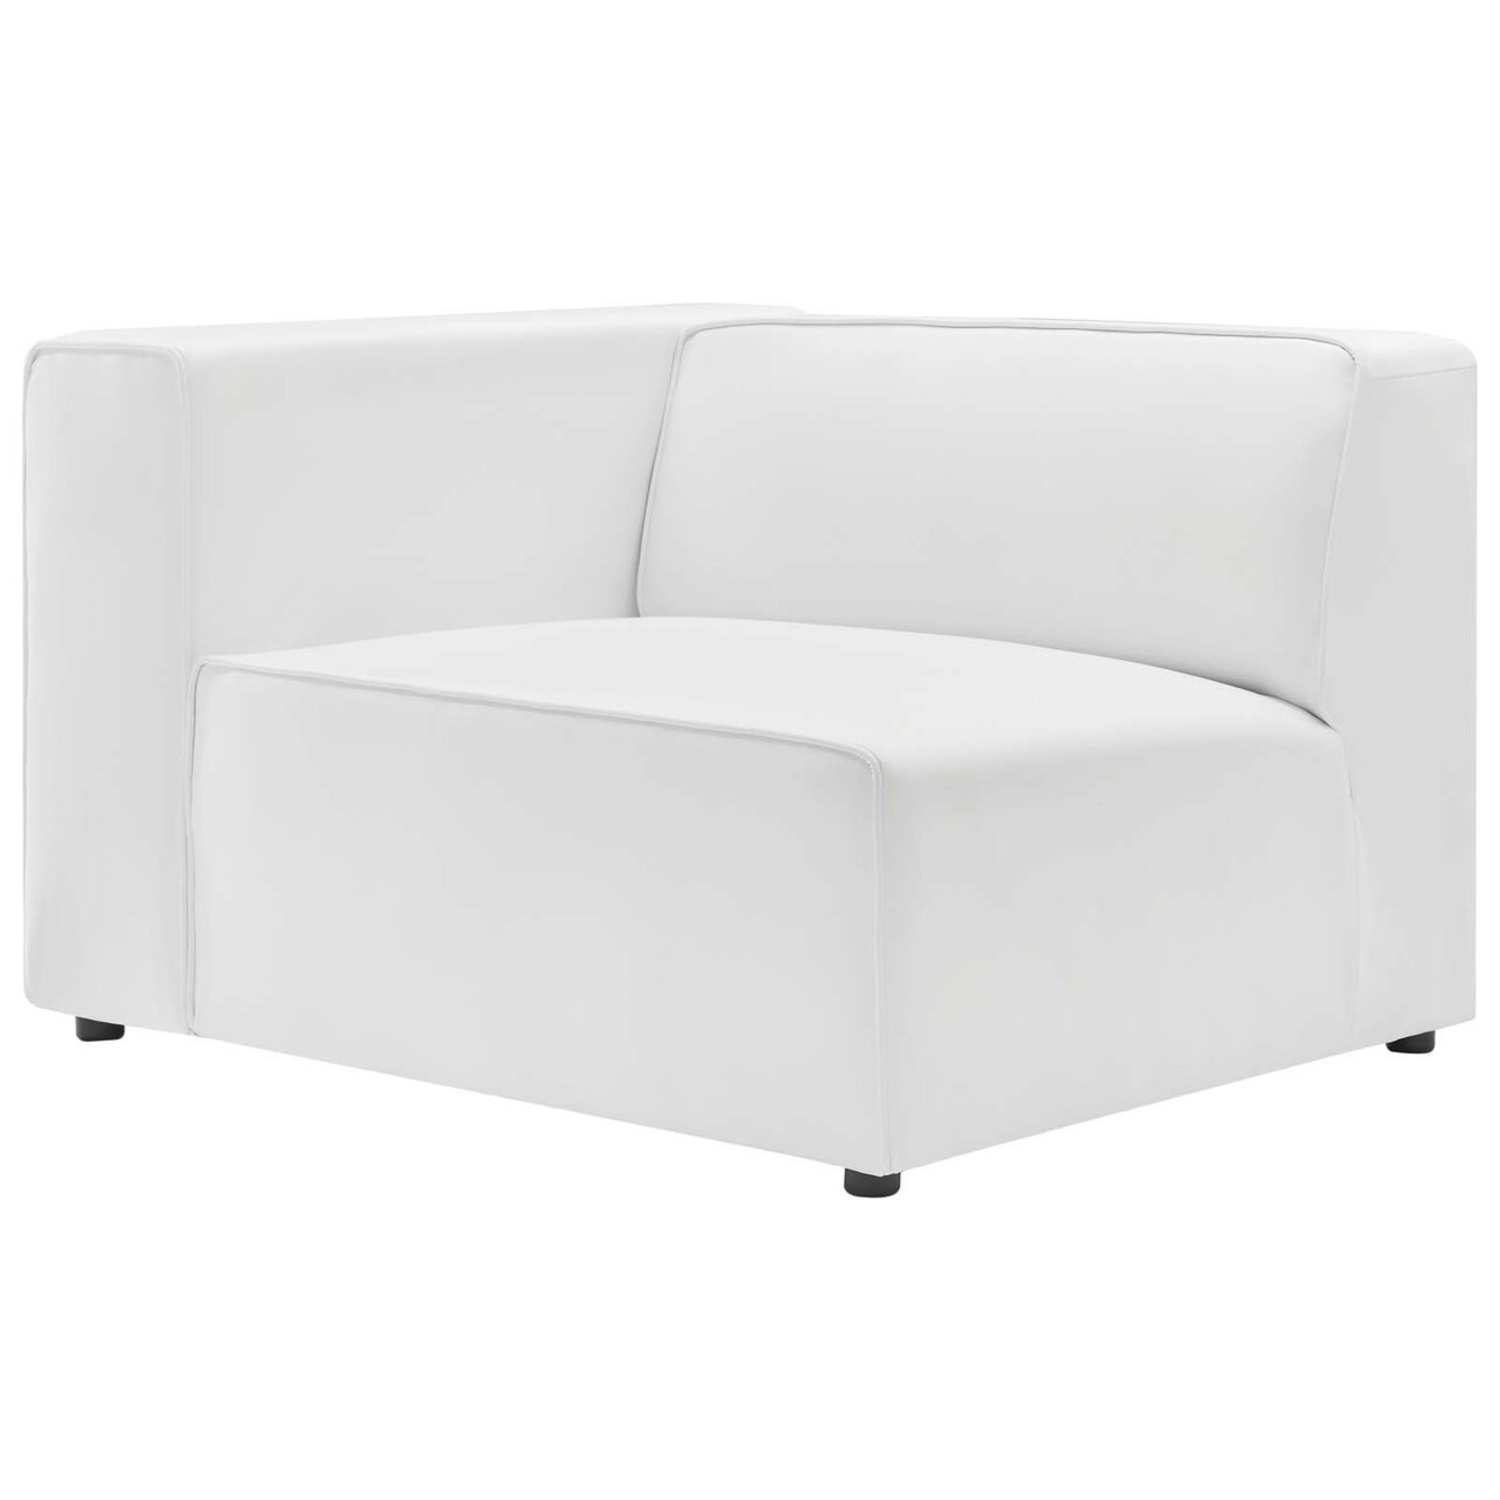 2-Piece Sectional Sofa In White Leather Finish - image-2